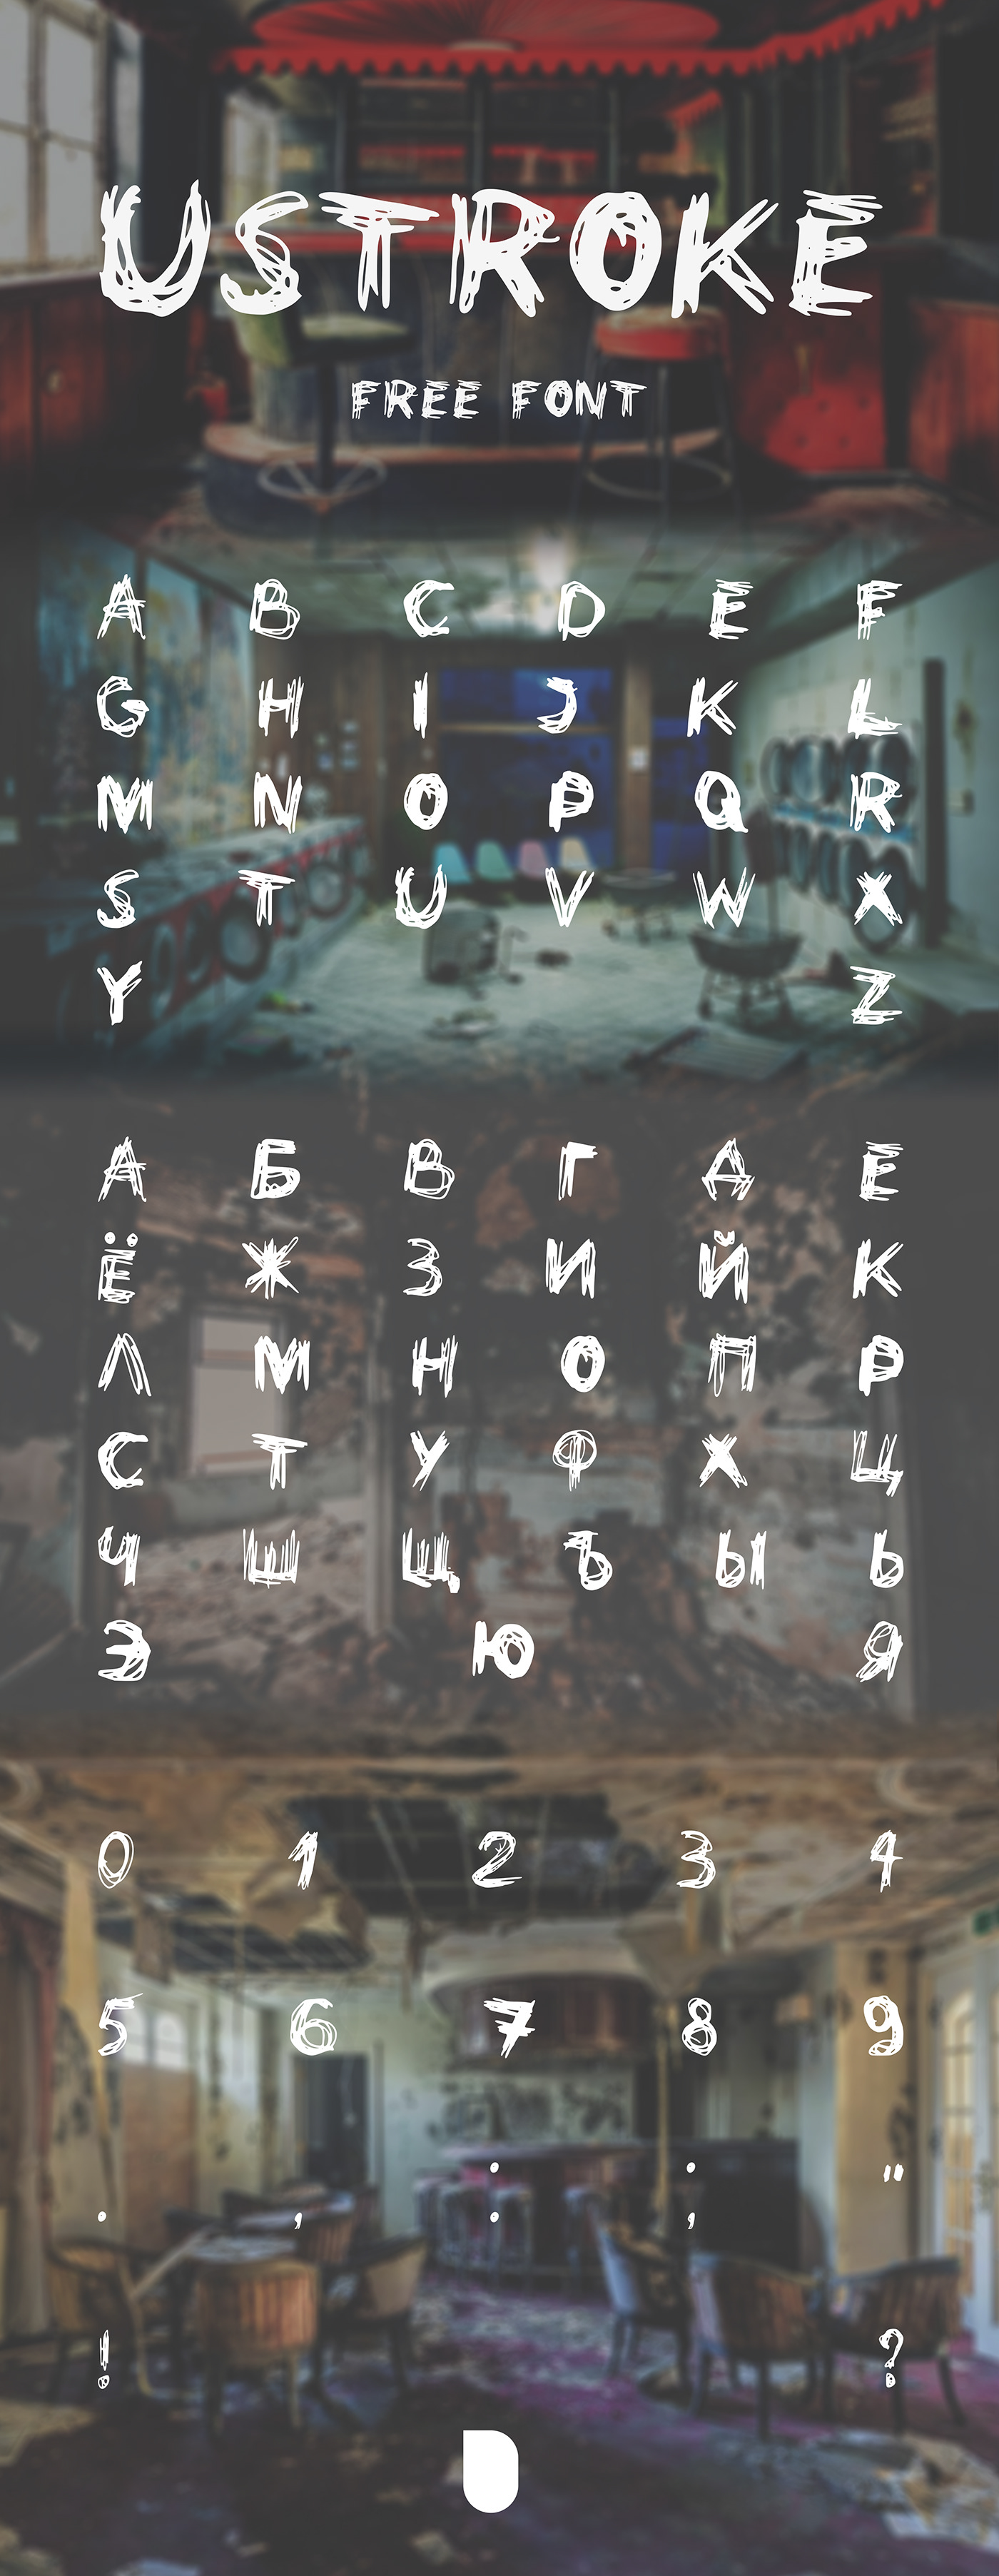 free font Typeface Free font Cyrillic Latin display font typography   hand made design